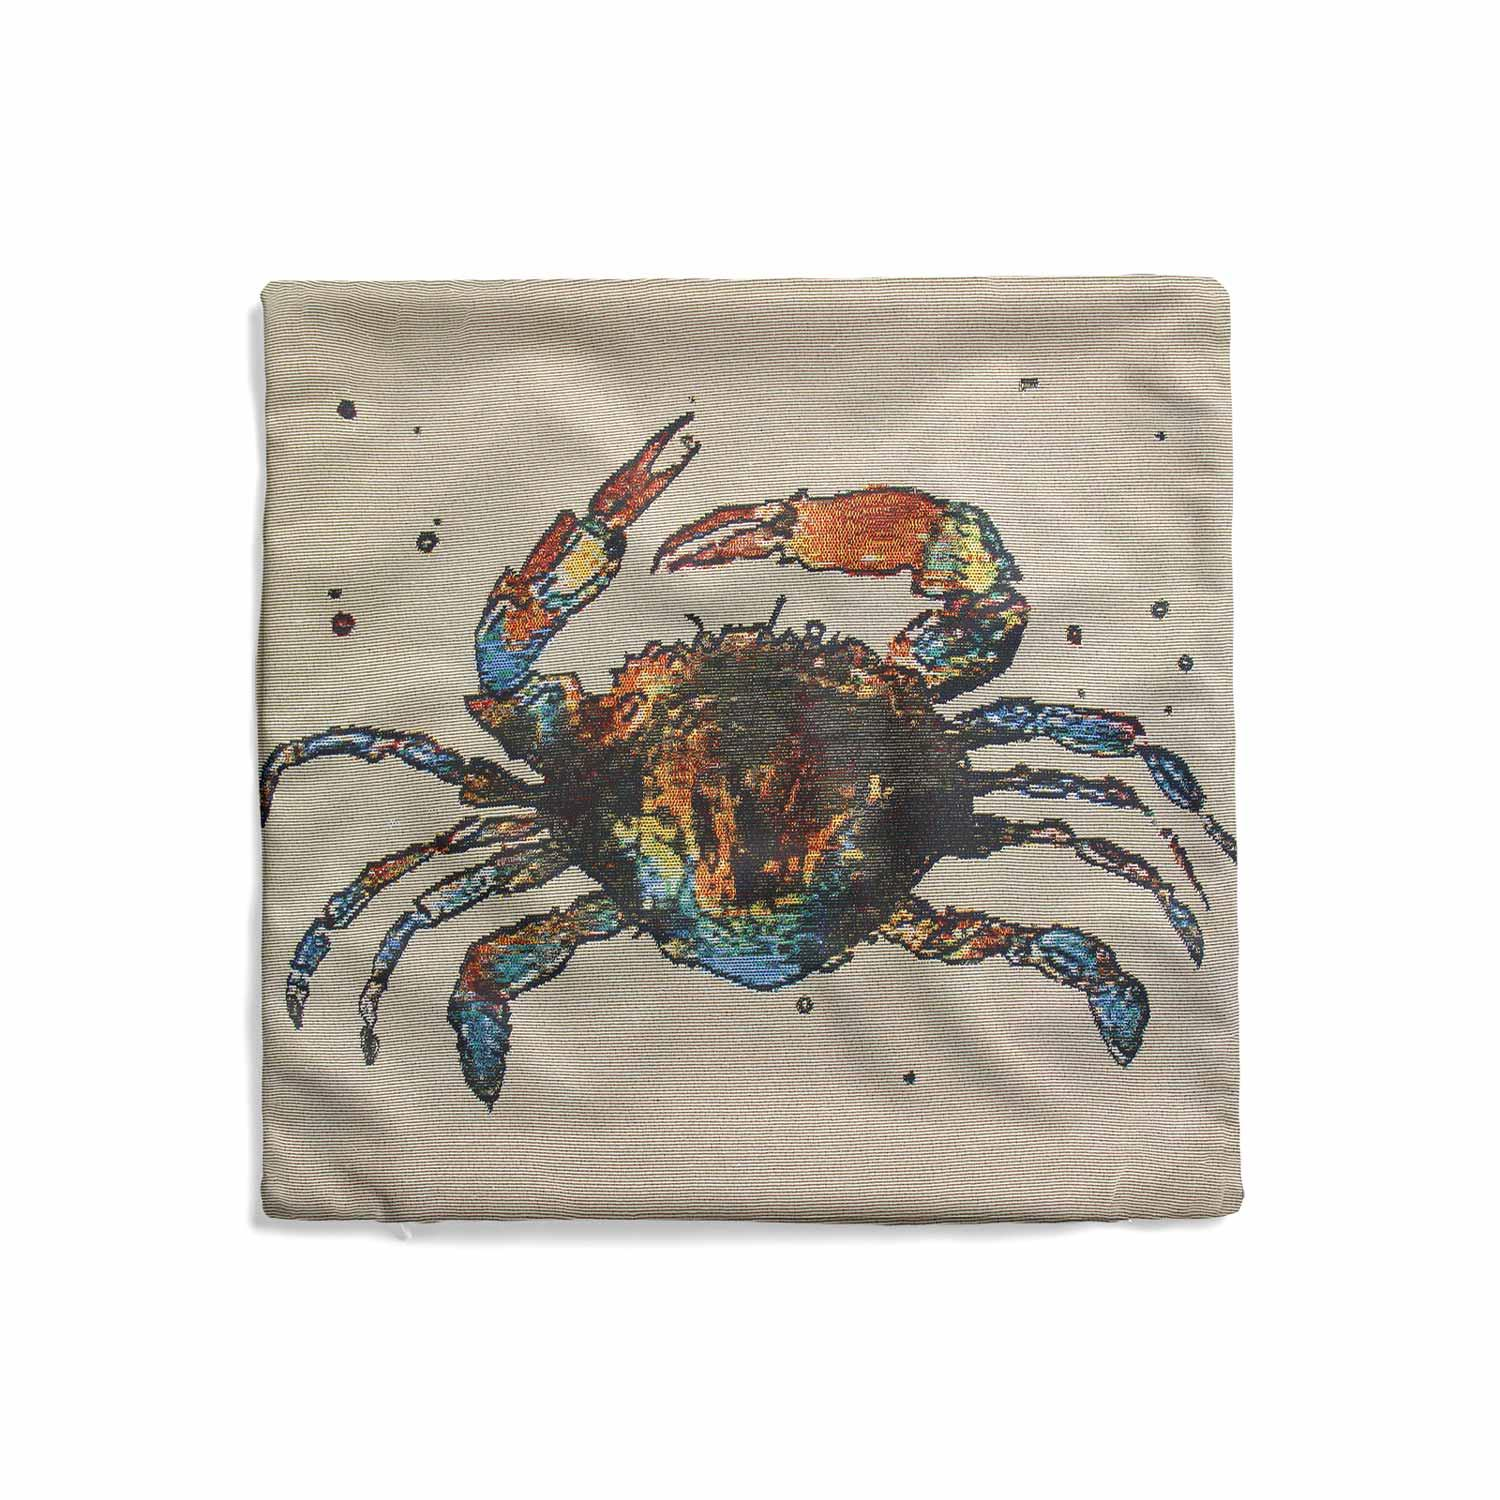 Tapestry-Cushion-Covers-Vintage-Pillow-Cover-Collection-18-034-45cm-Filled-Cushions thumbnail 33